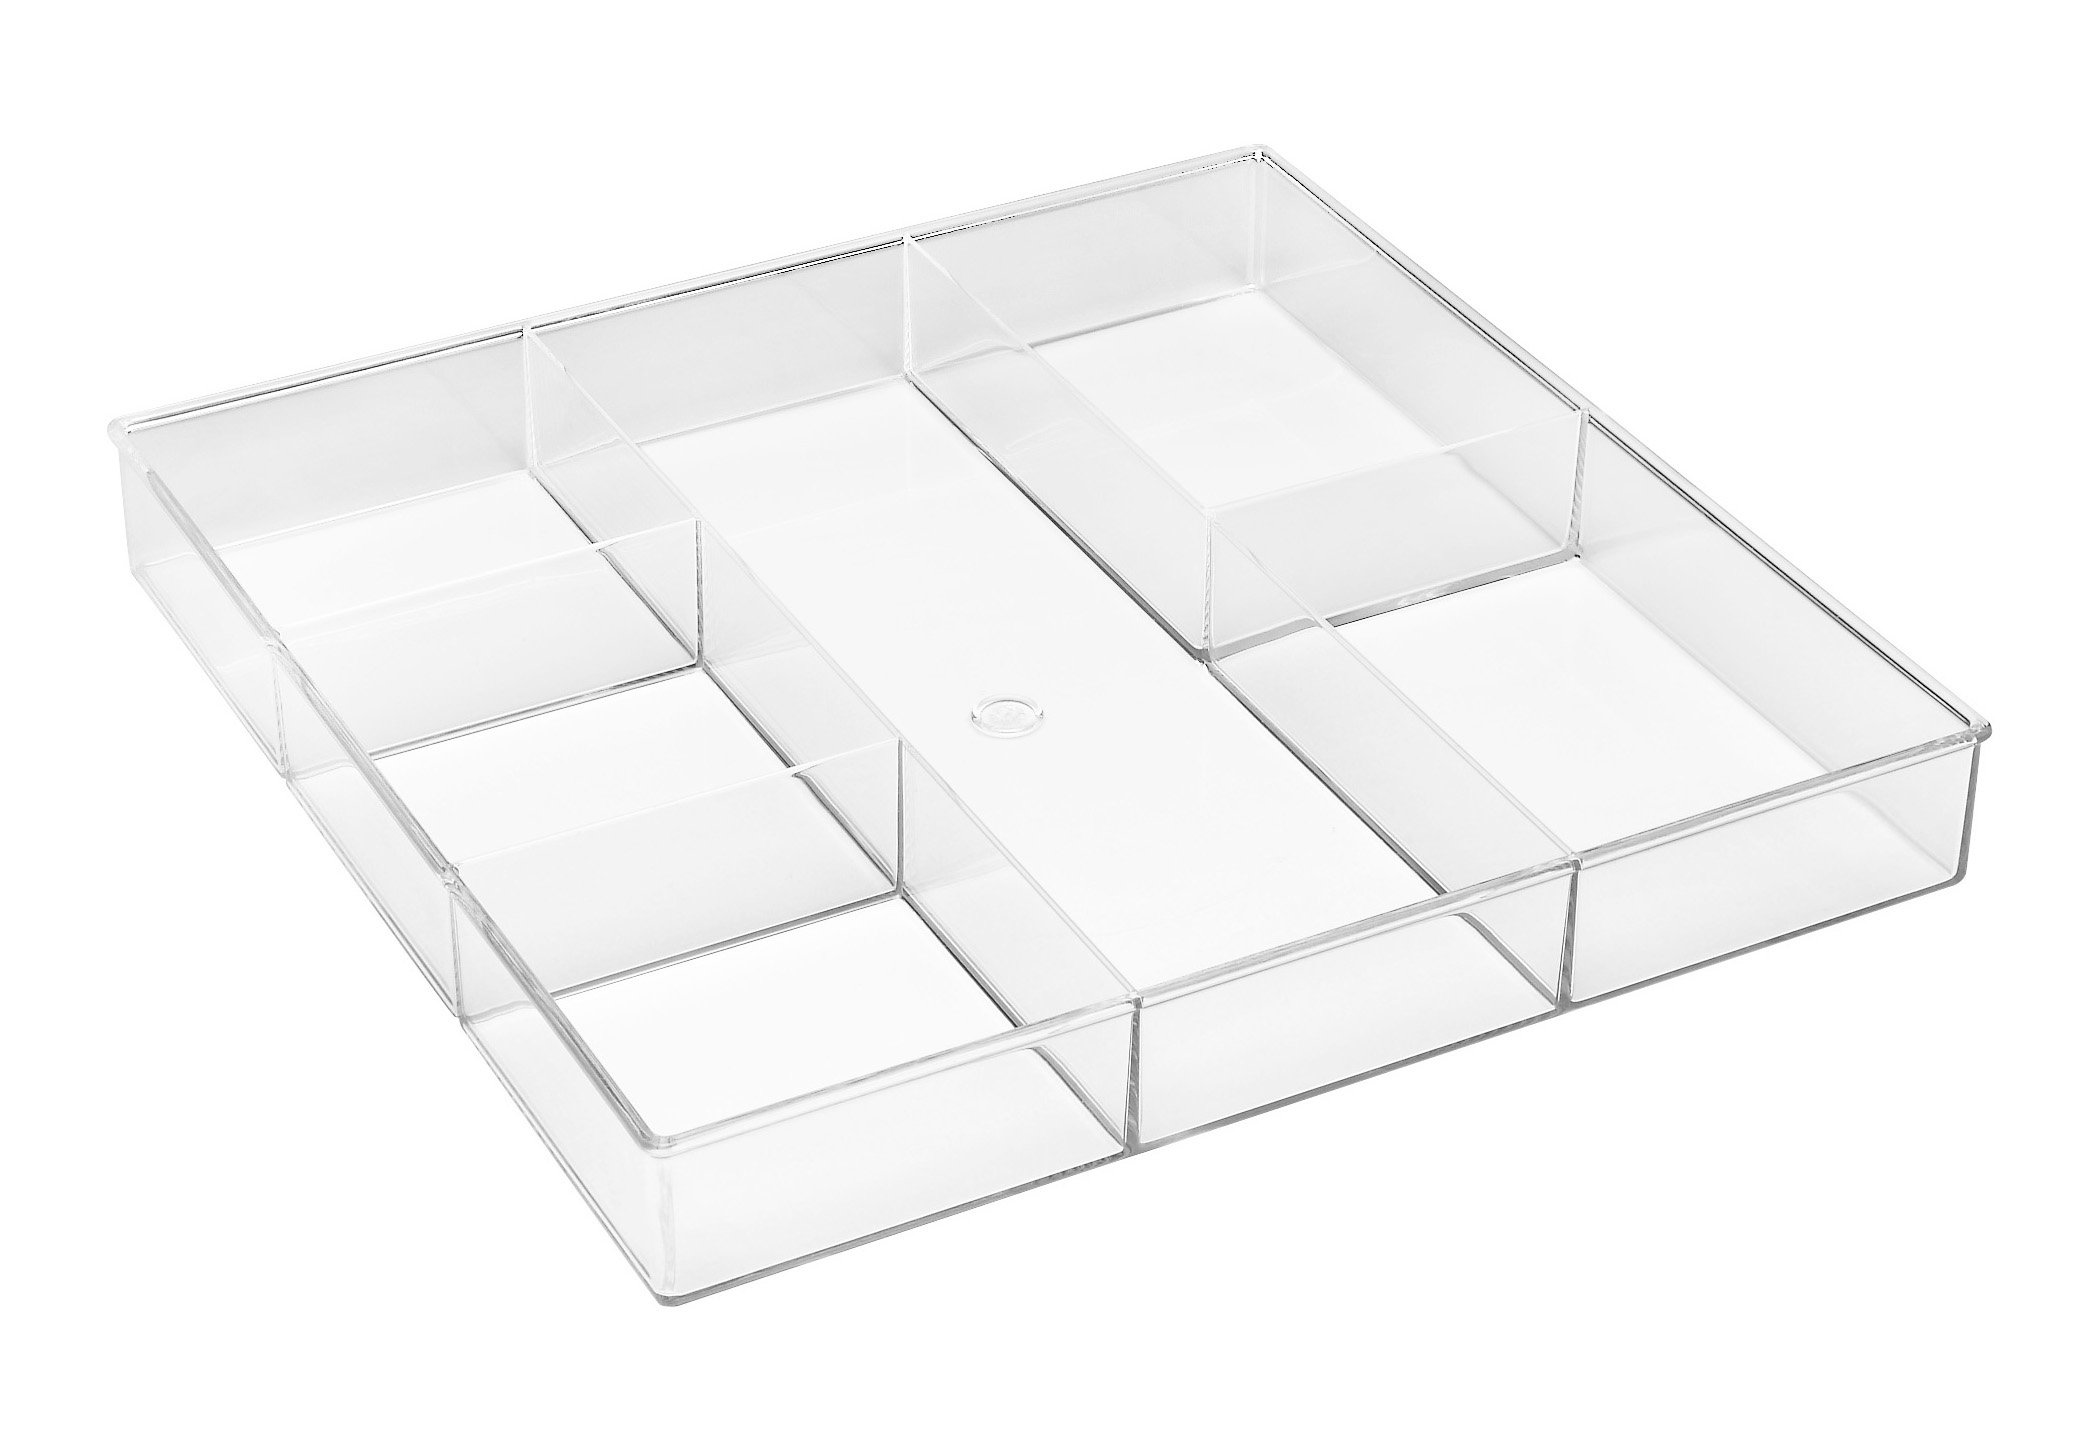 Whitmor 6-Section Drawer Organizer - Clear by Whitmor